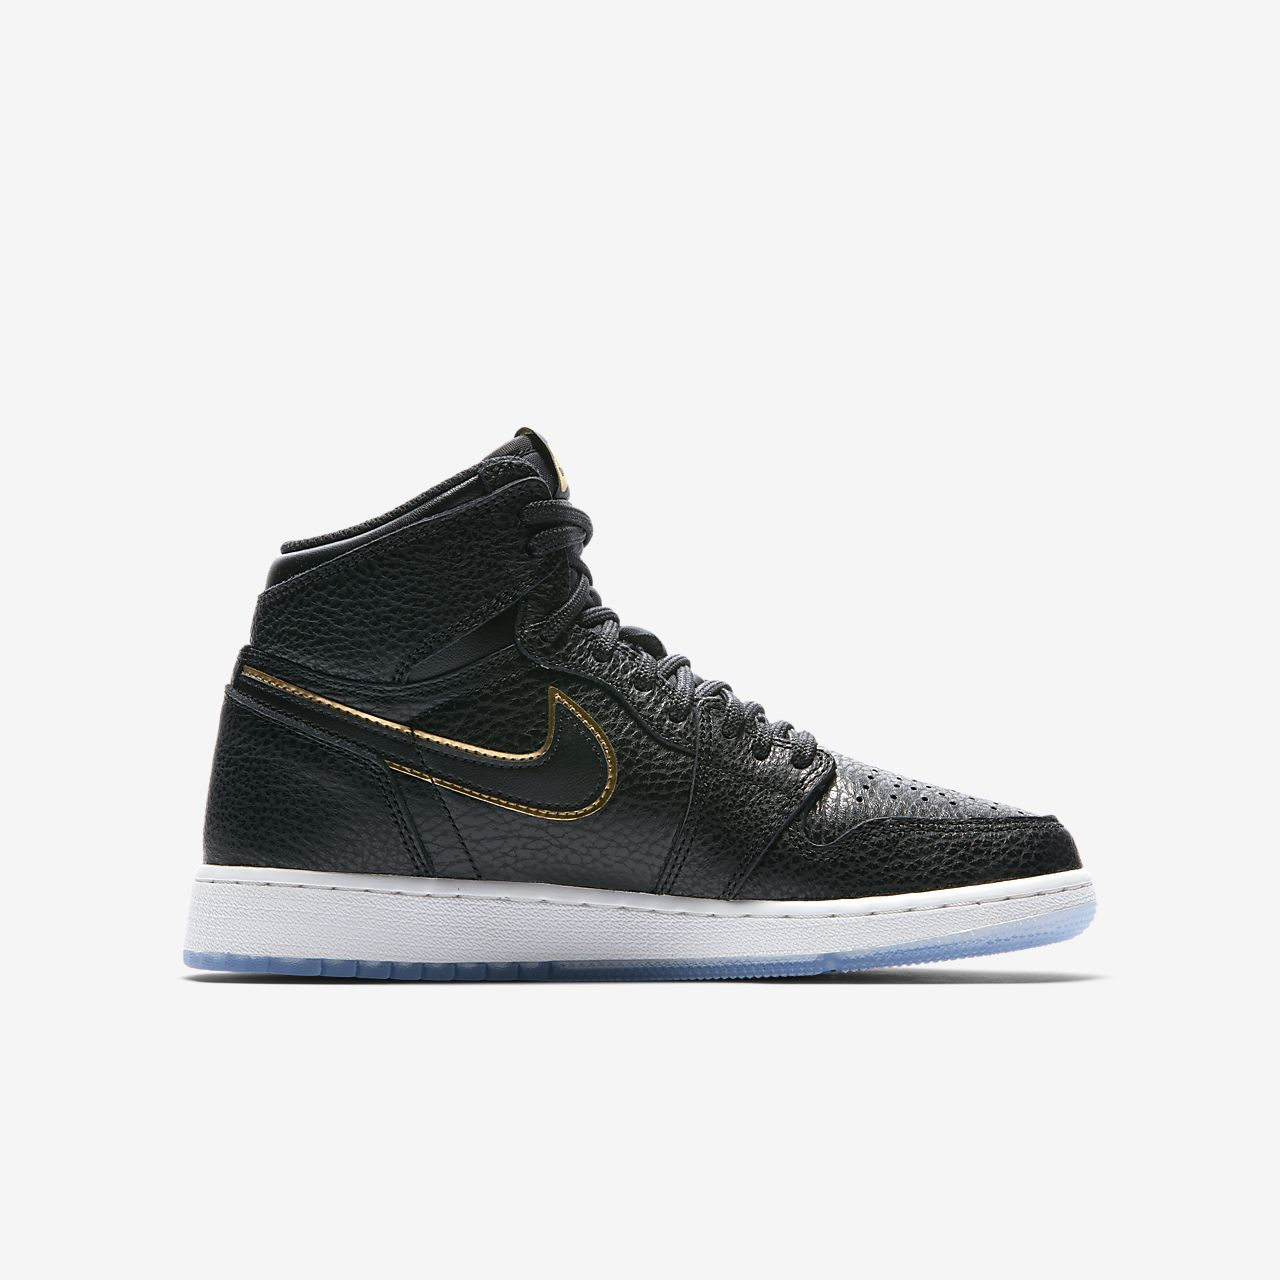 nike jordan retro 1 high og nz